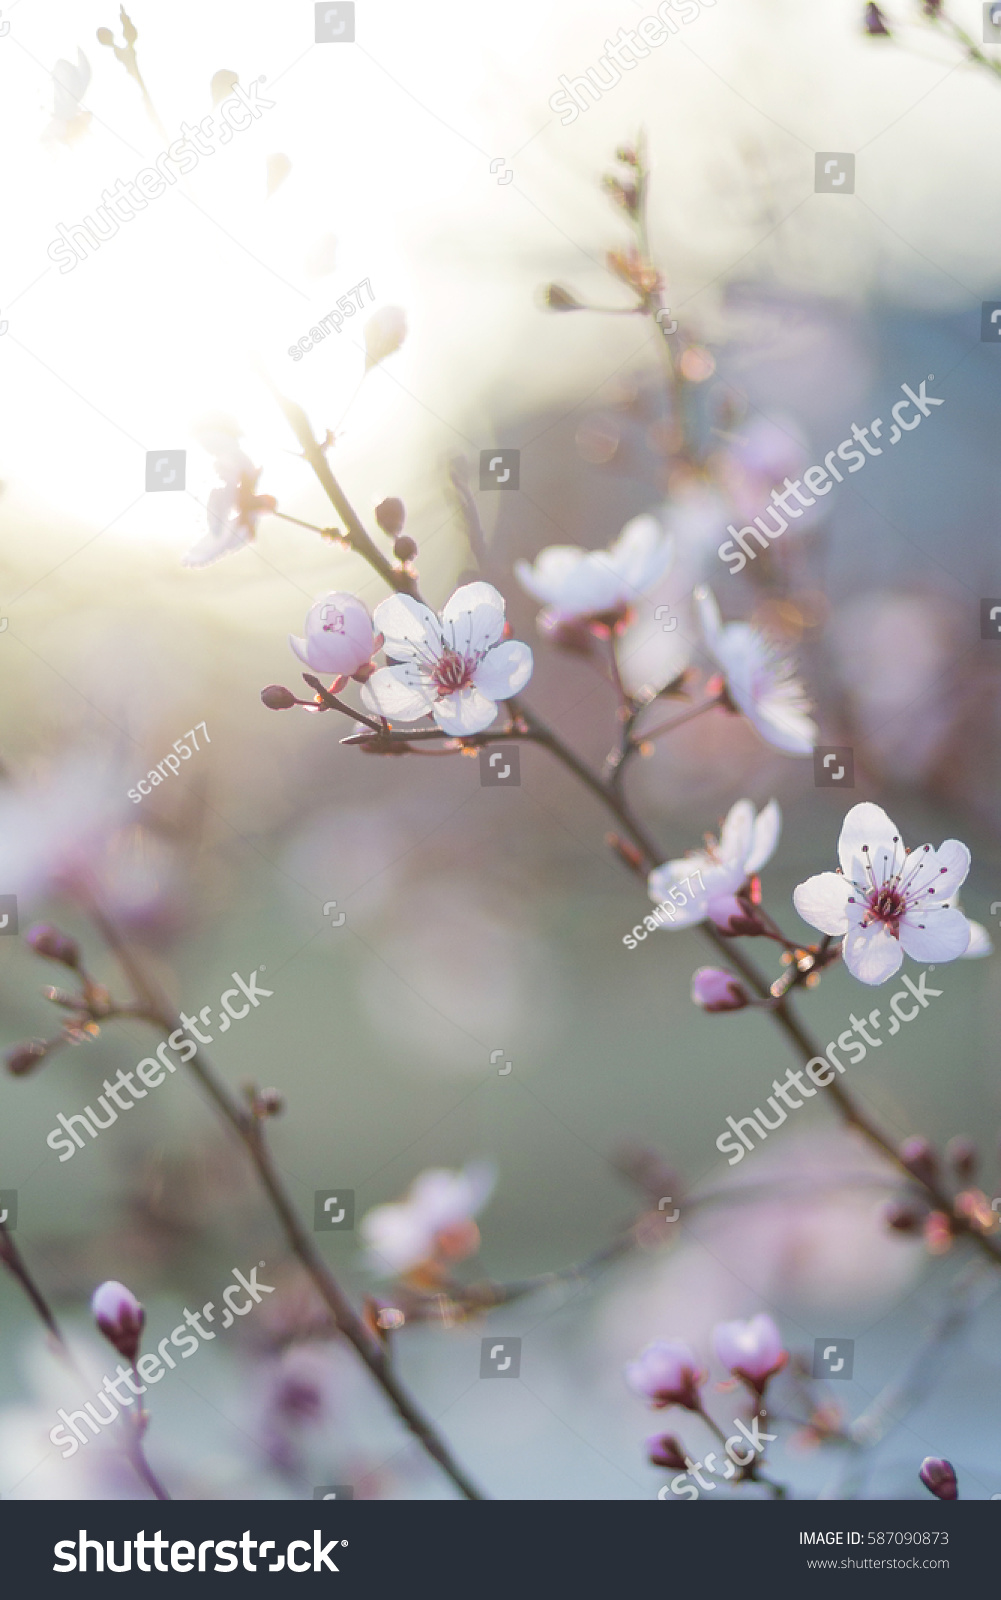 Ornamental plum tree spring flower buds stock photo edit now ornamental plum tree spring flower buds and blossoms on branches in evening mightylinksfo